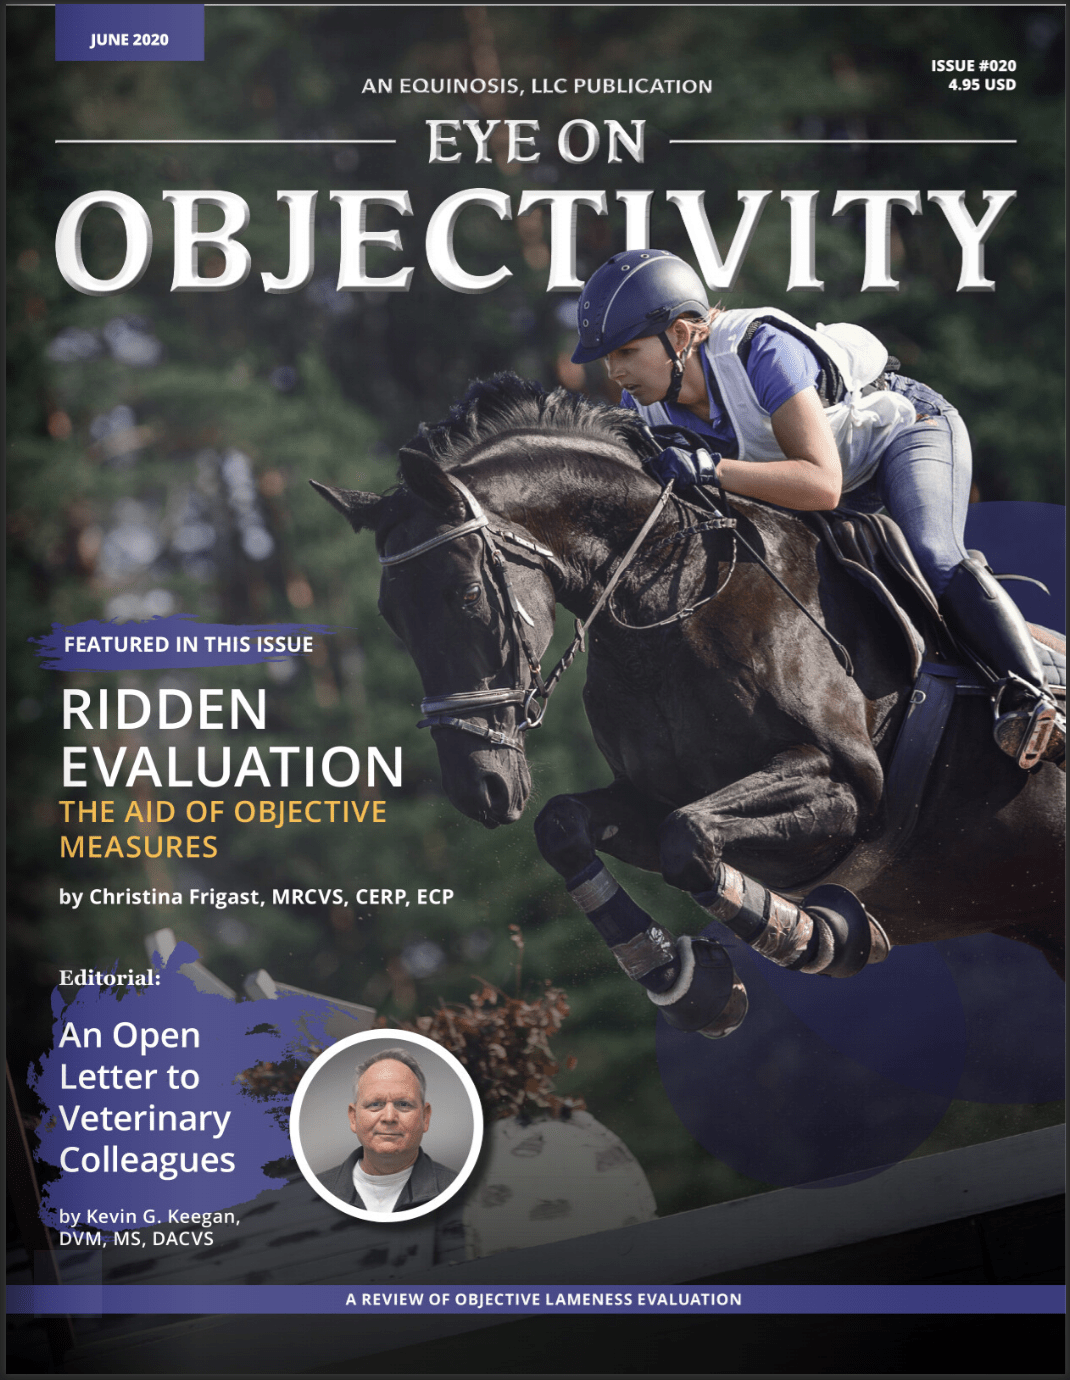 eye on objectivity-june-2020-equinosis-publication